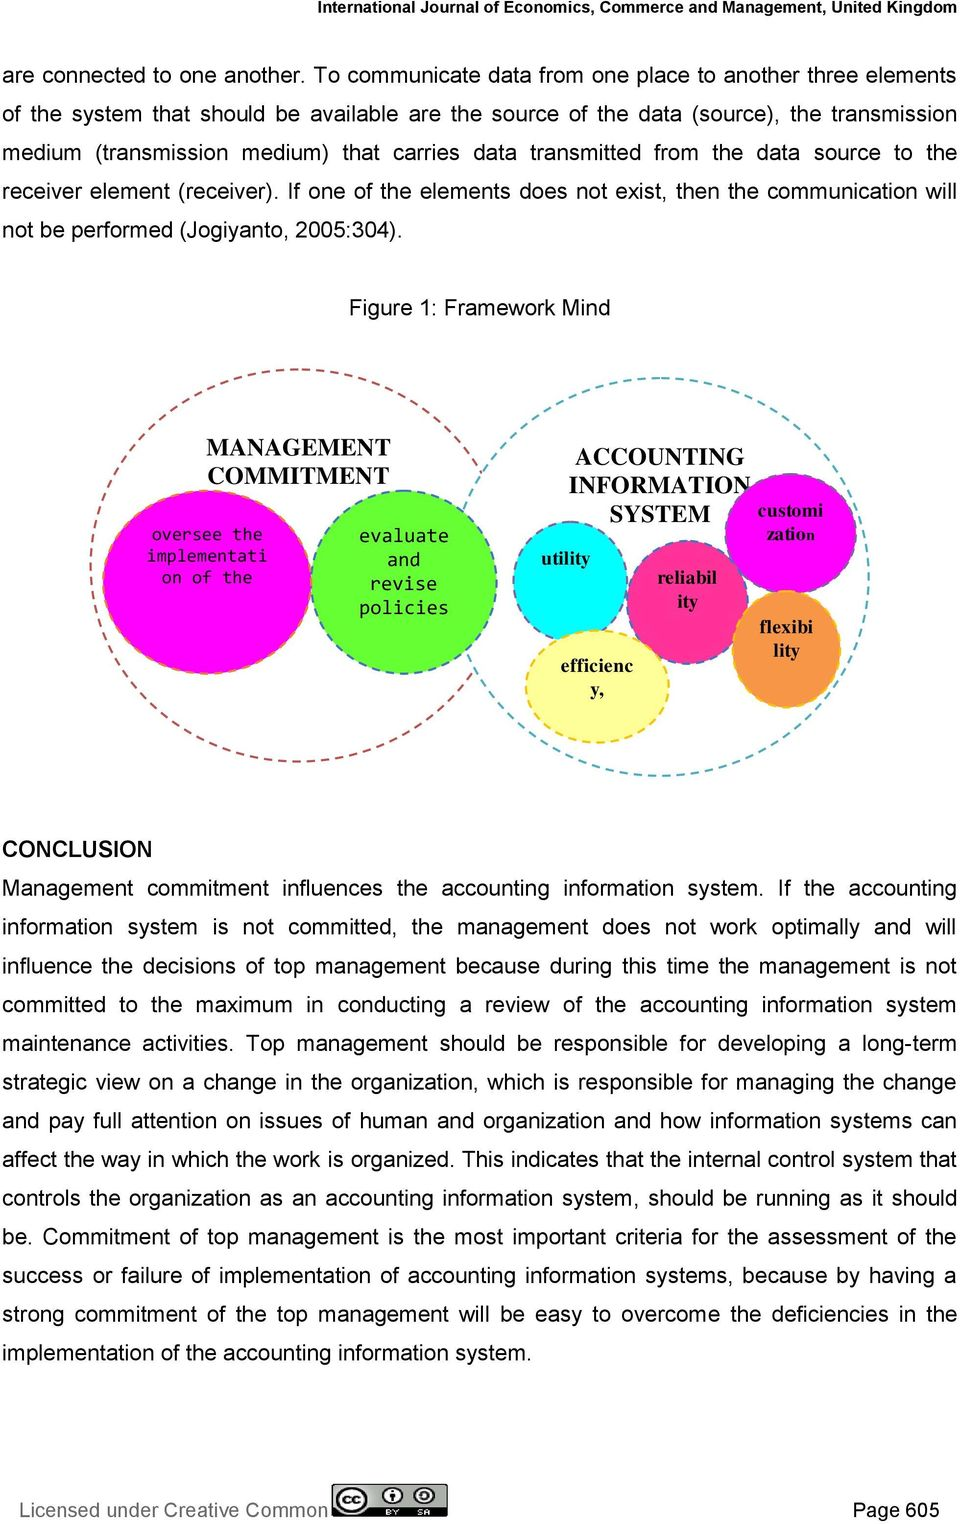 an analysis of organizational assessment and mangement in pjr inc Executive summary   3 performance of the implementing organization -  saibaan   management team was very committed to the project  changes  incorporated to address the concerns, comments, and issues raised by oxfam on   pkr wood roof 000 pkr 517,60000 pkr 995% 51,49965.